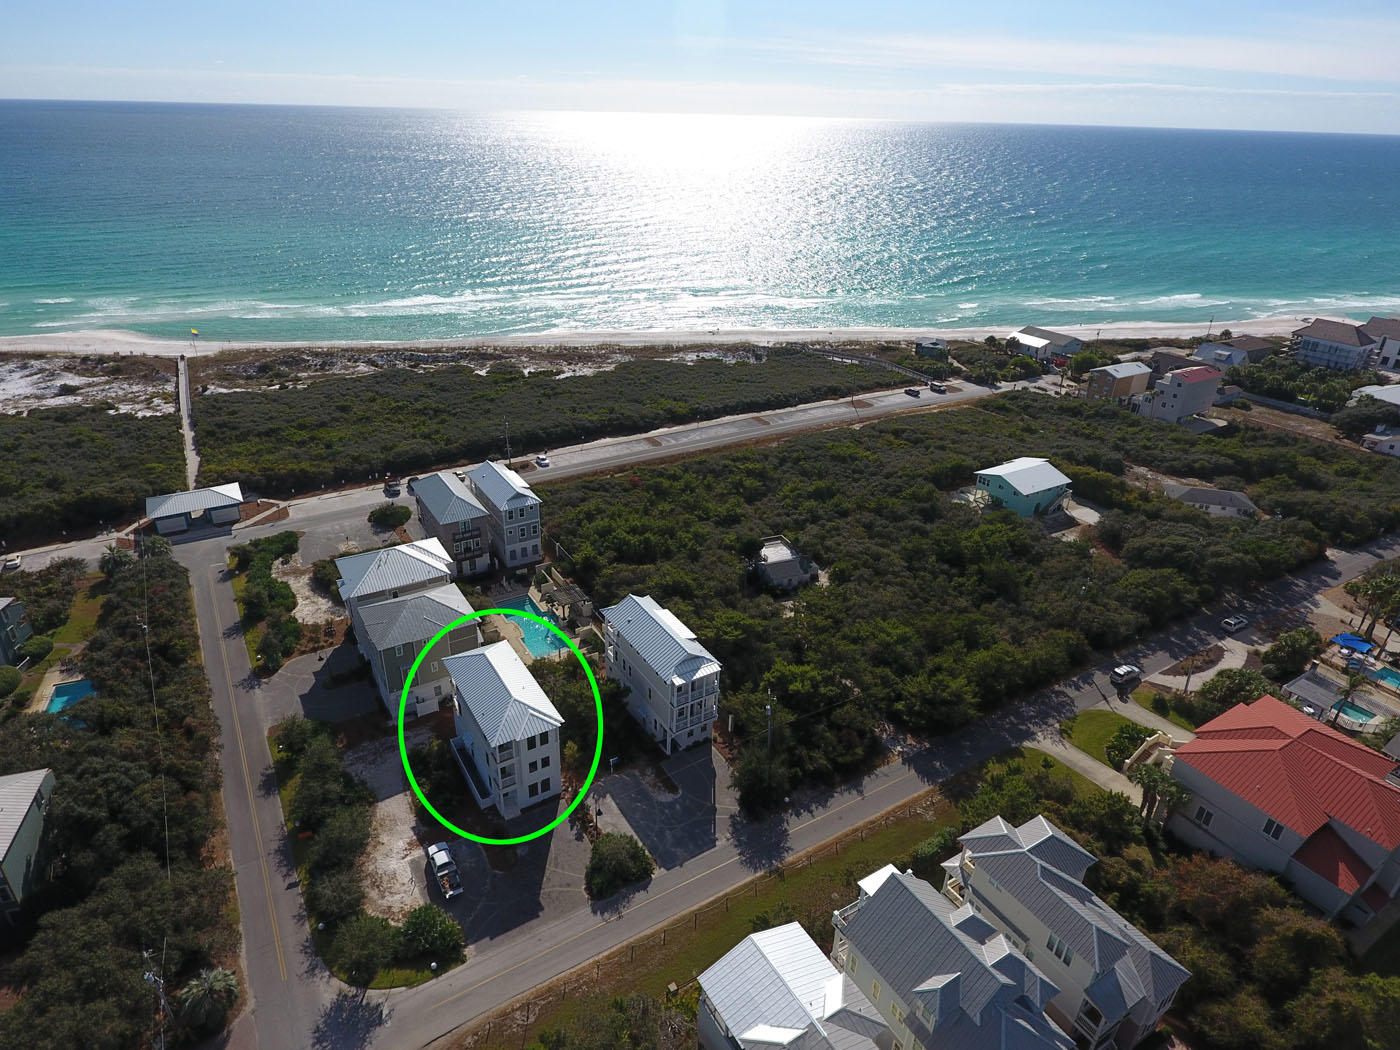 15 Pompano,Inlet Beach,Florida 32461,4 Bedrooms Bedrooms,4 BathroomsBathrooms,Detached single family,Pompano,20131126143817002353000000